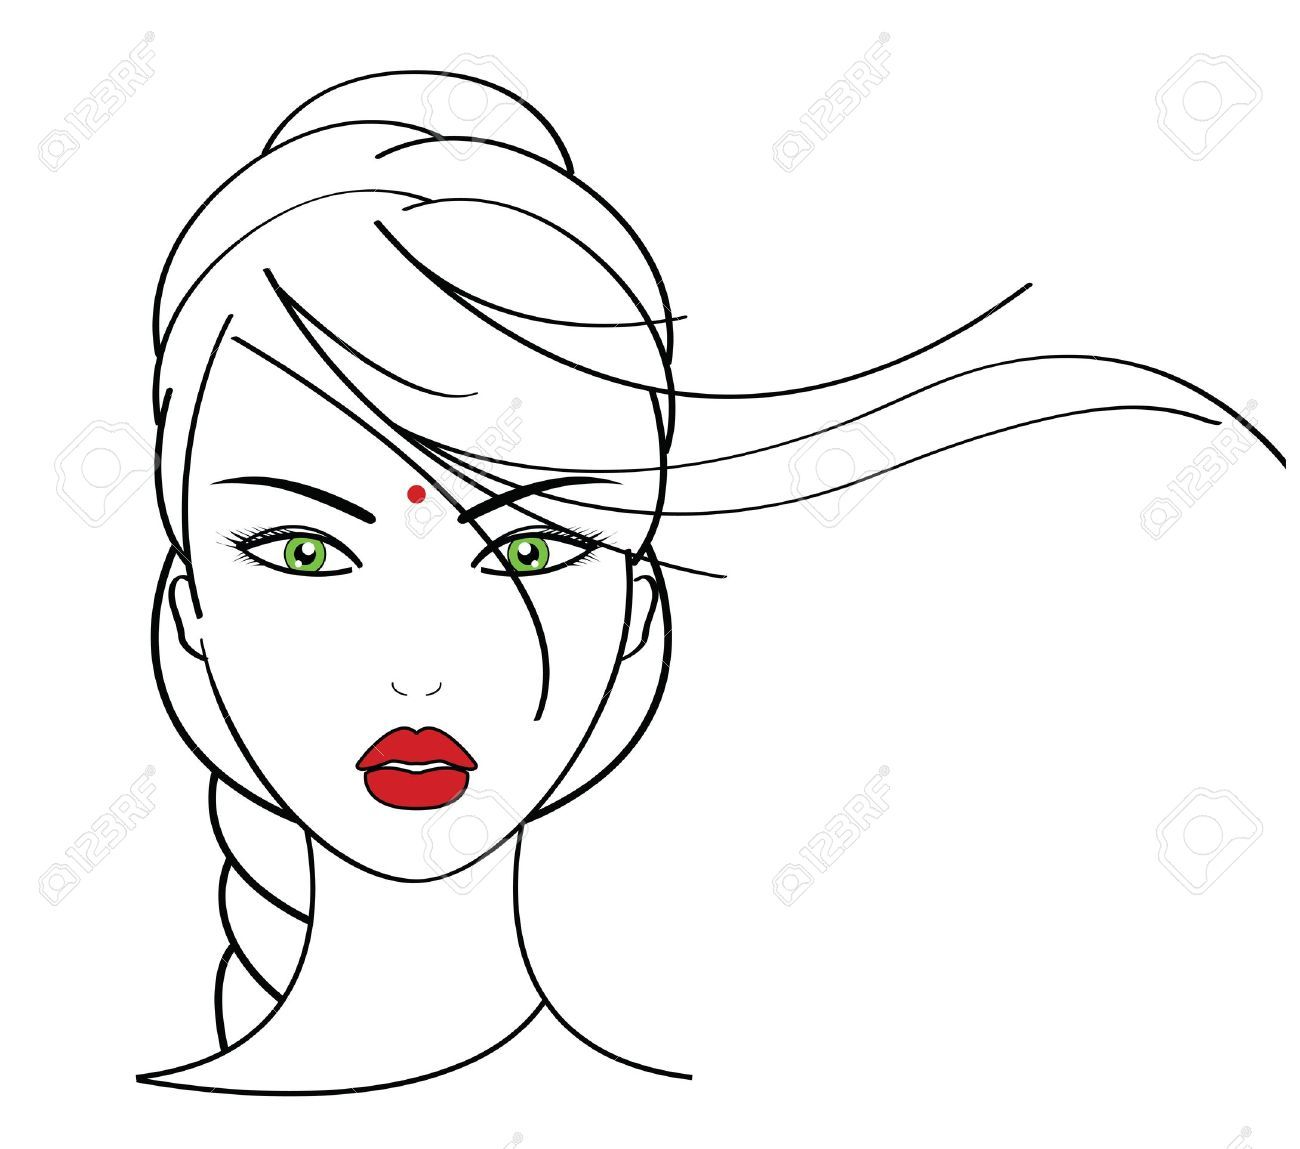 Line Drawing Face Earrings : Makeup artist stock vector illustration and royalty free